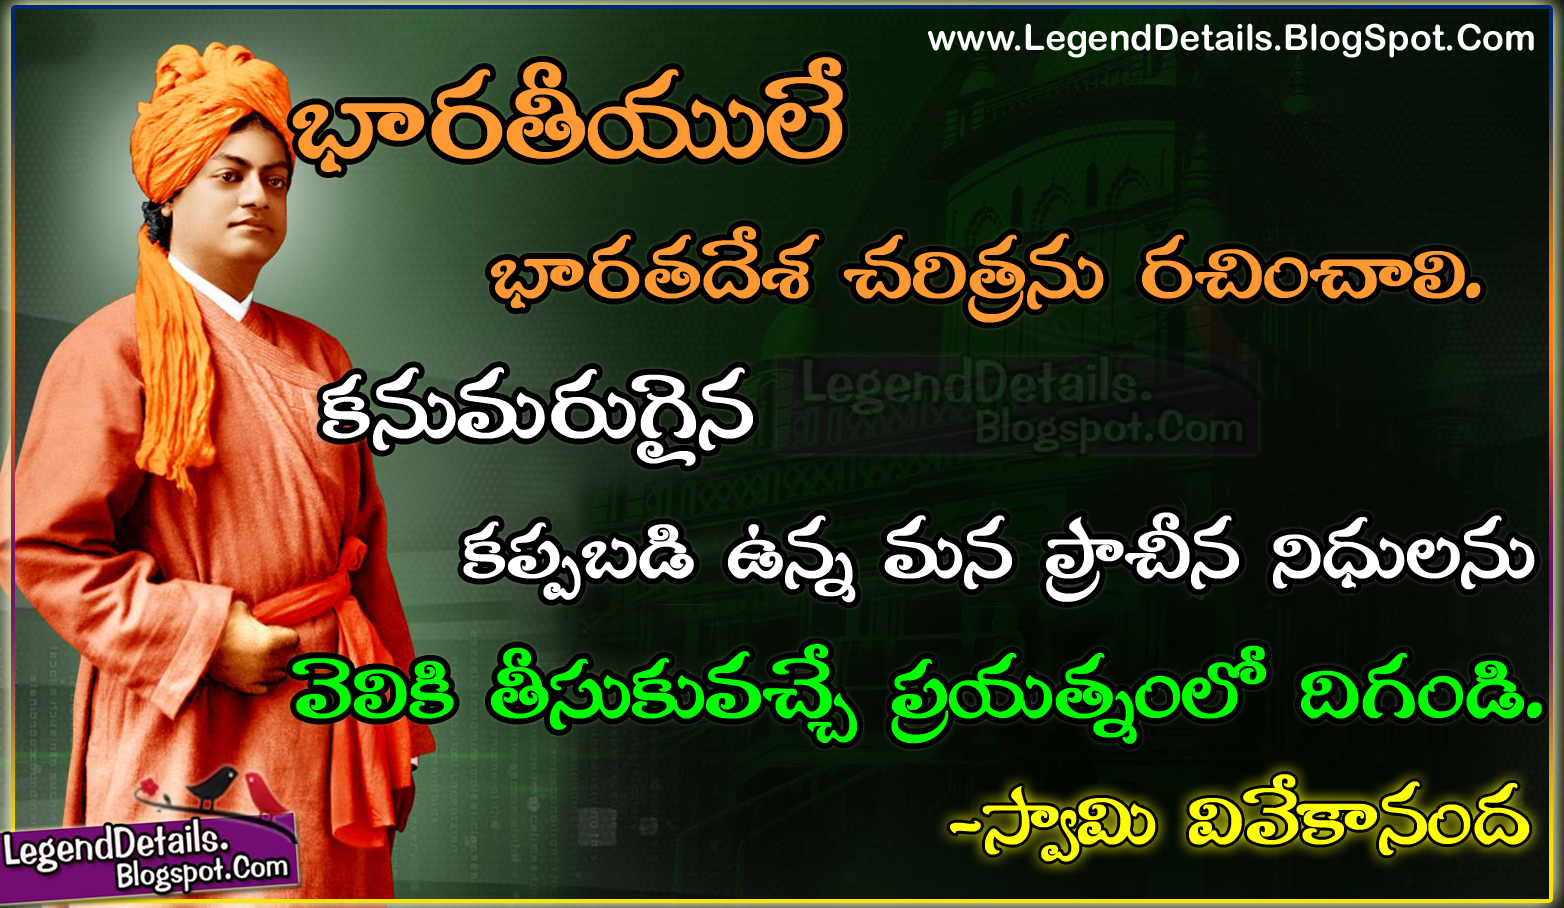 Swami Vivekananda Thoughts On Youth In Telugu Legendary Quotes